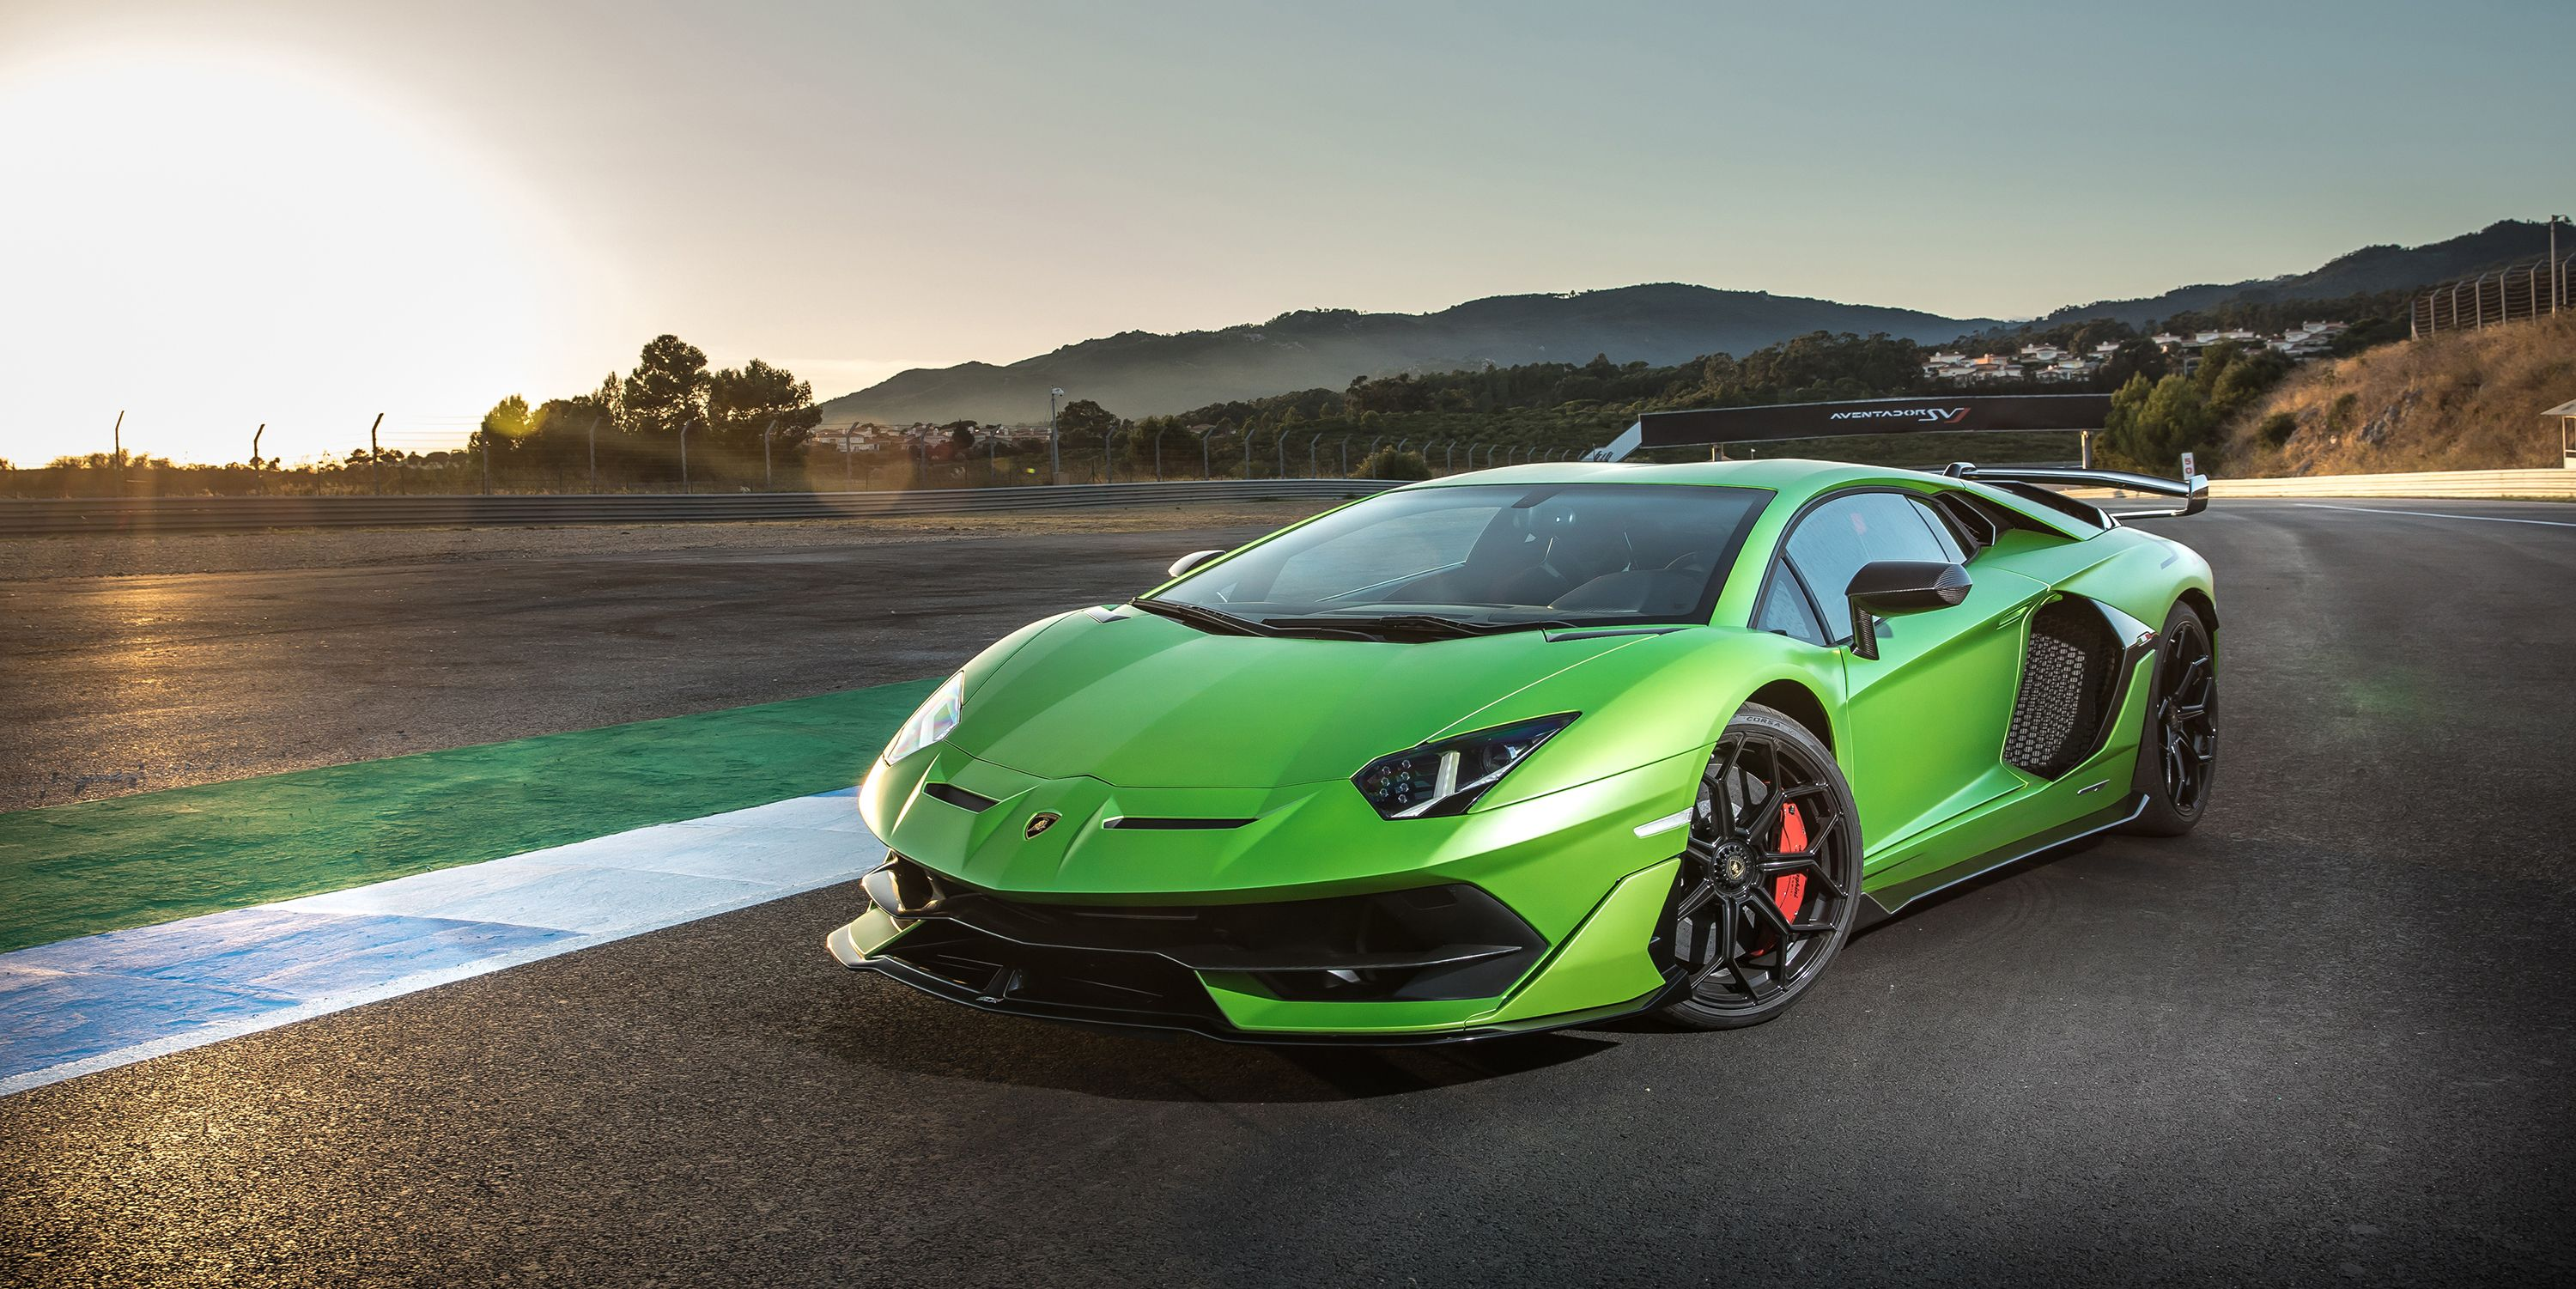 The Cars With the Biggest Engines You Can Buy Today